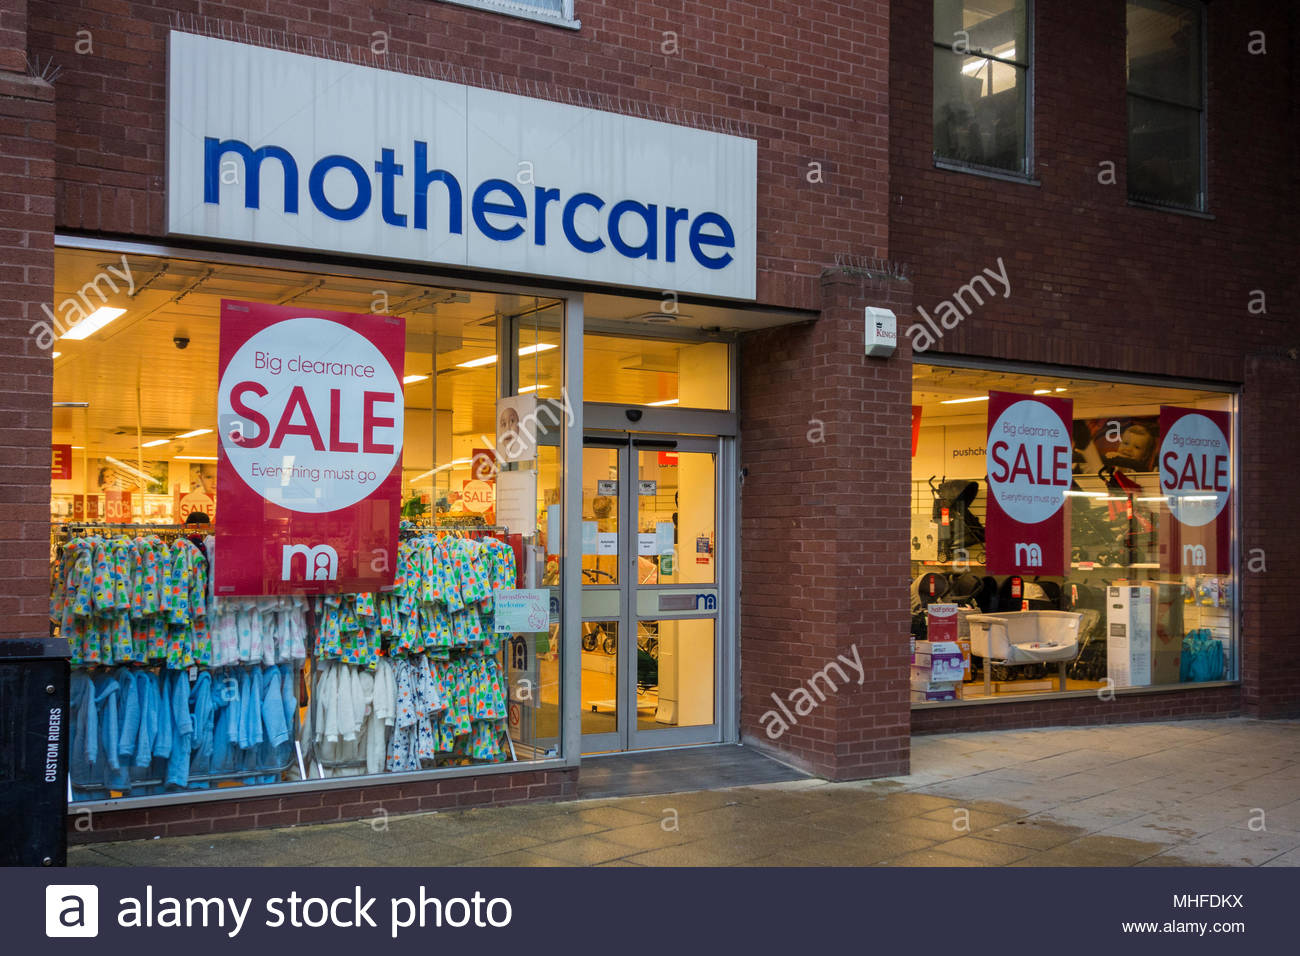 A branch of Mothercare imn Huntingdon, UK, advertising a sale (store now closed) - Stock Image